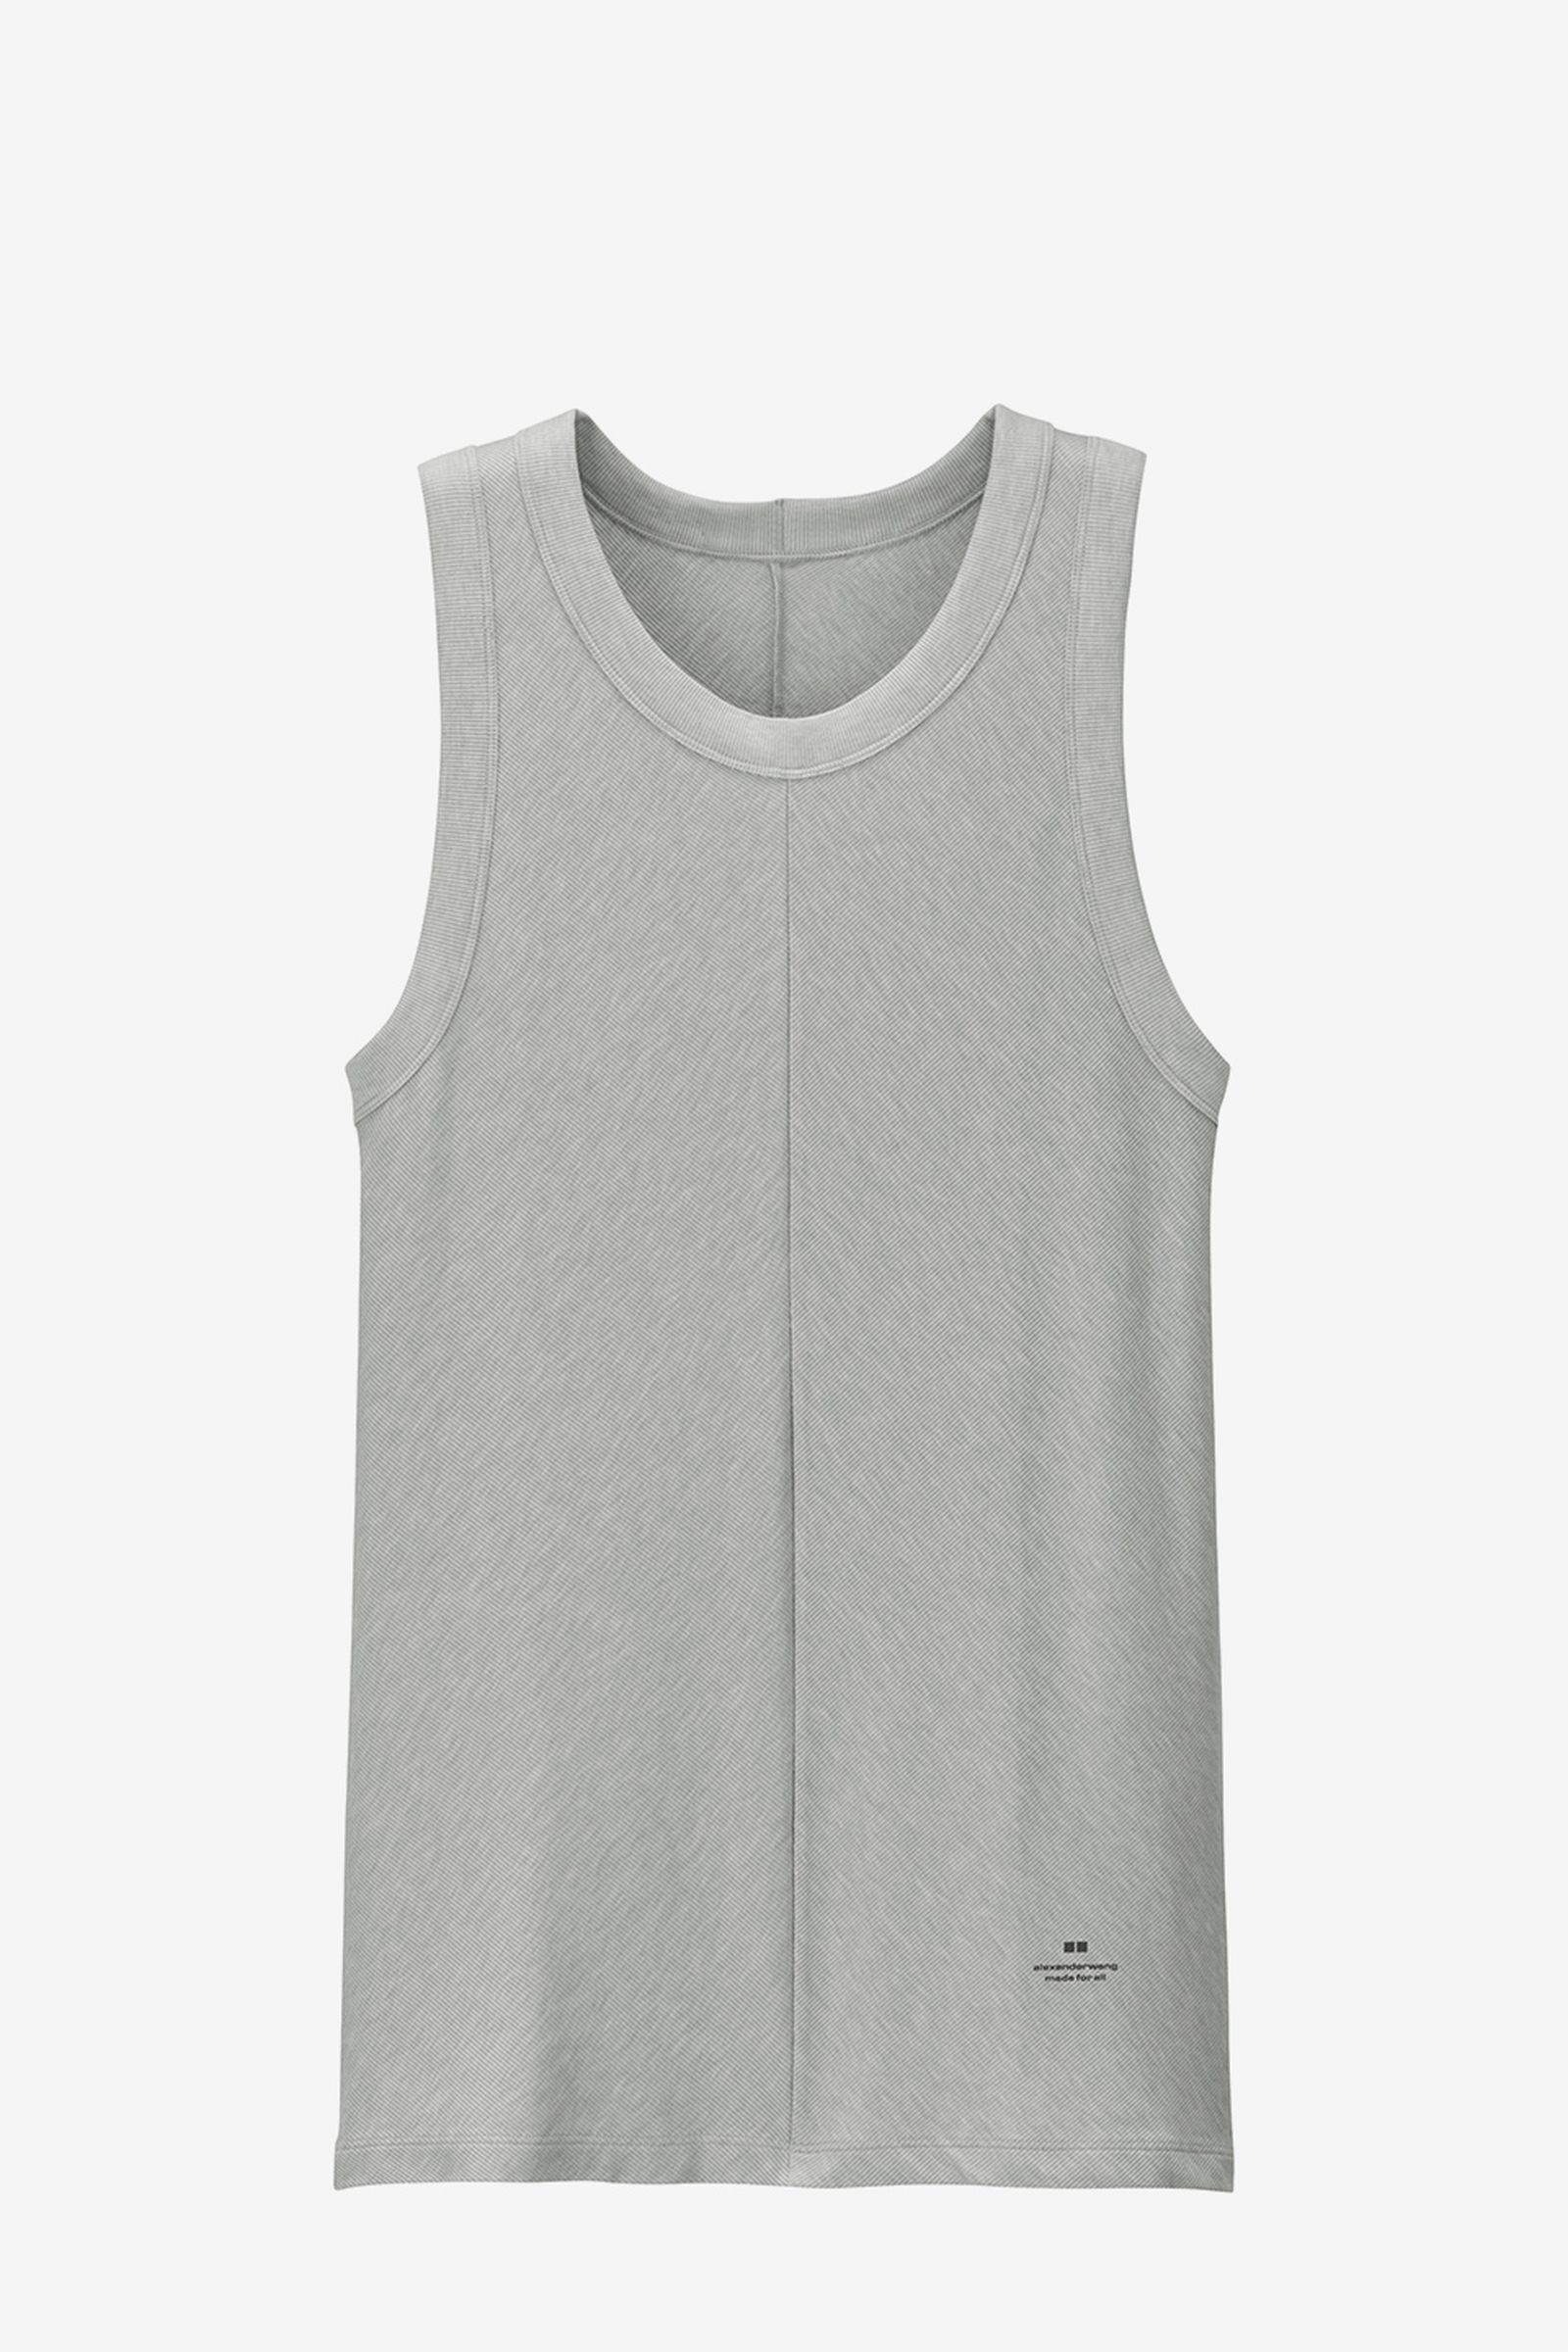 alexander wang uniqlo fw18 collection mens